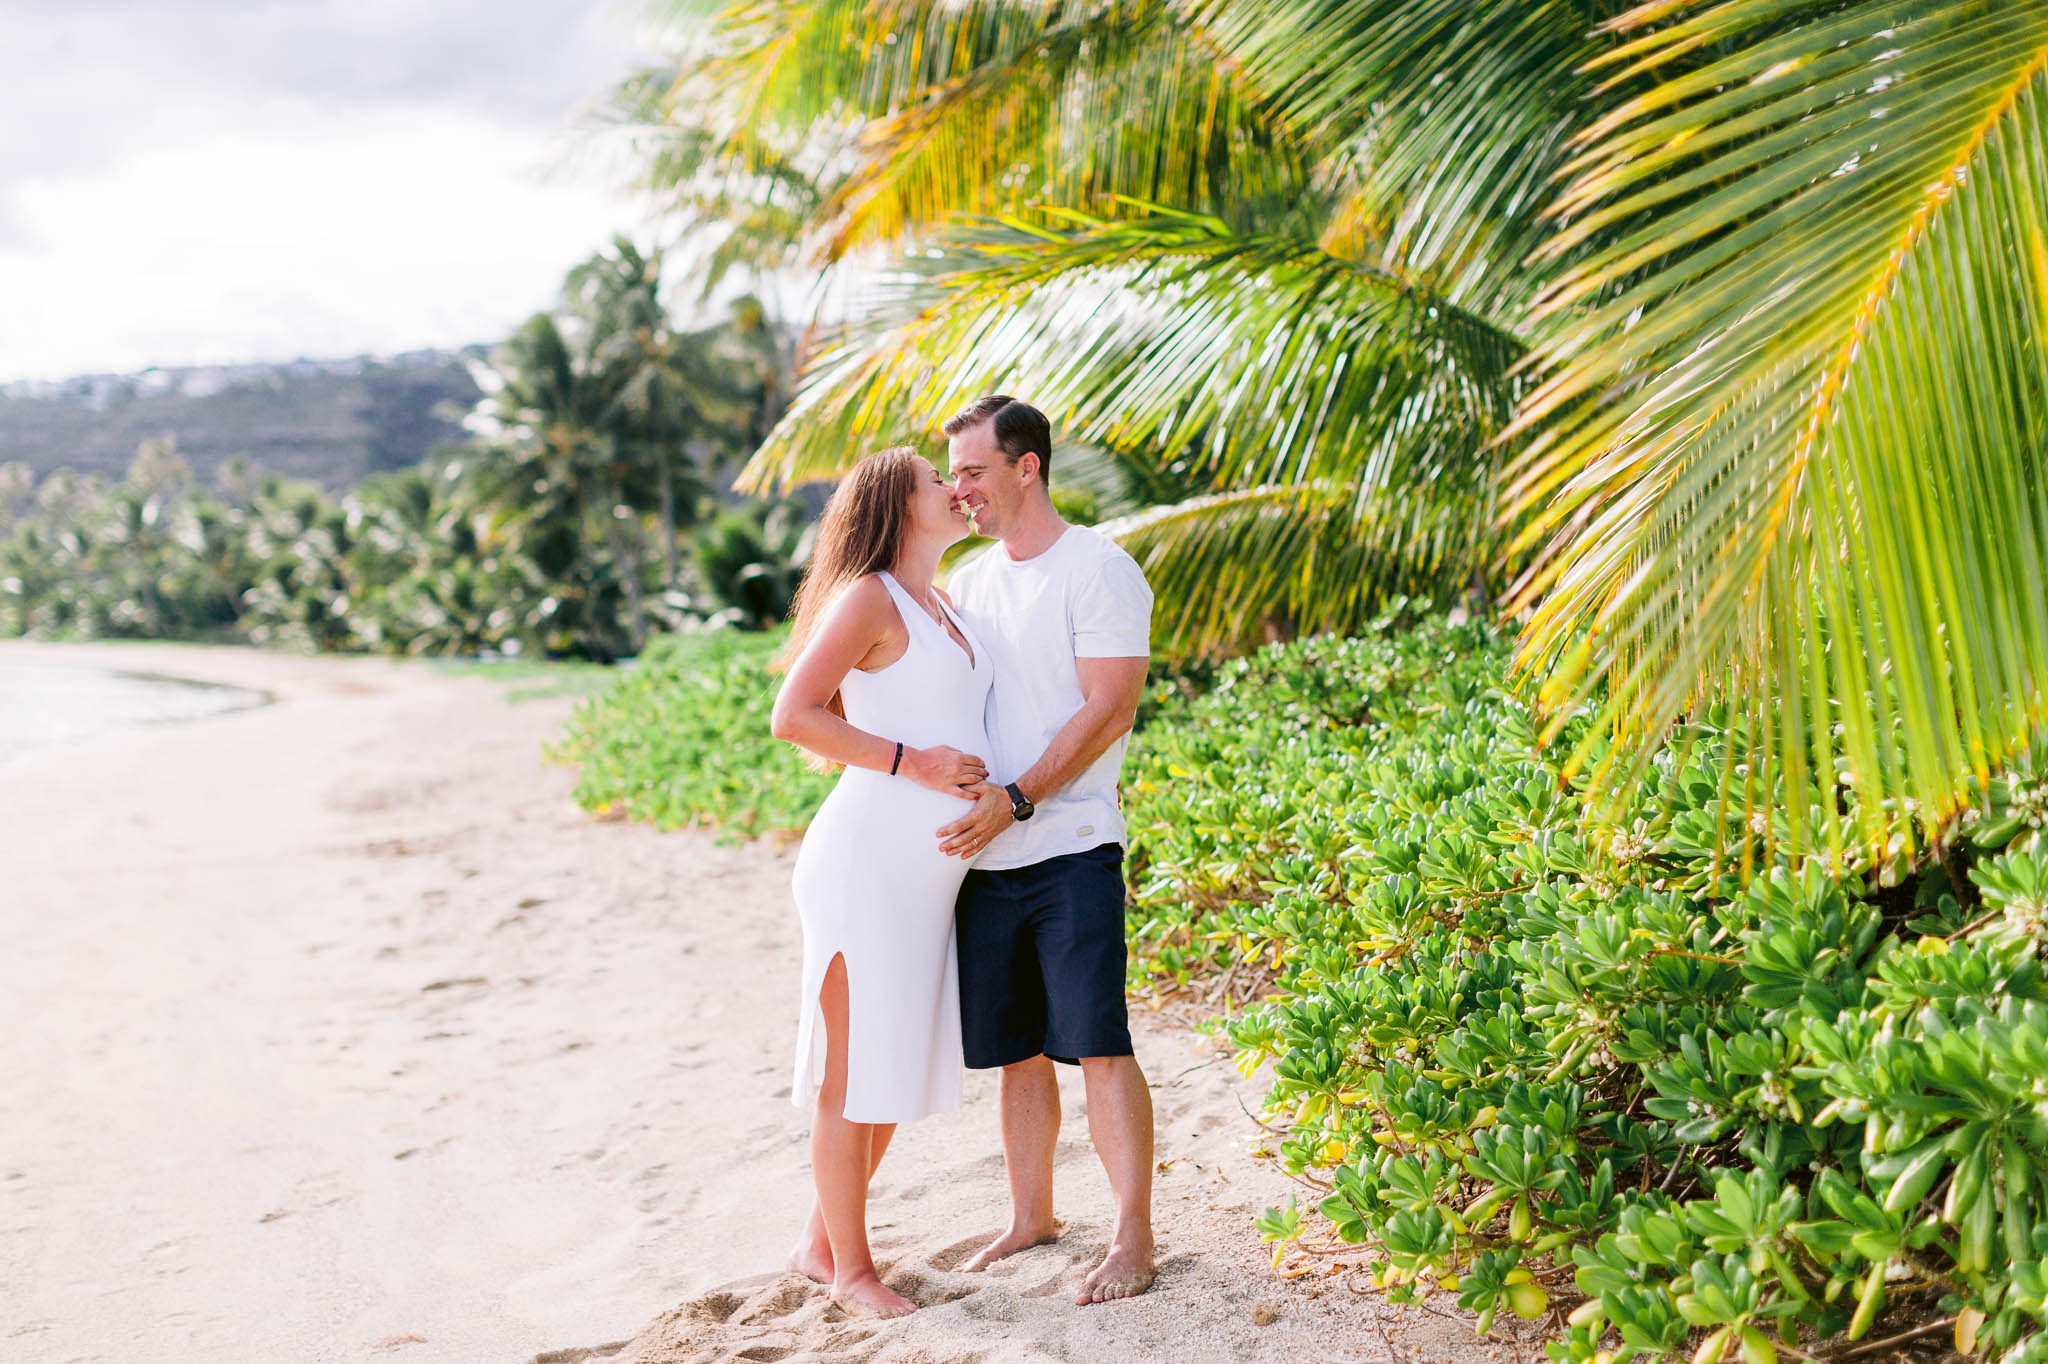 White sandy Beach Maternity Photography Session with Palm Trees - Hawaii Kai Family Photographer